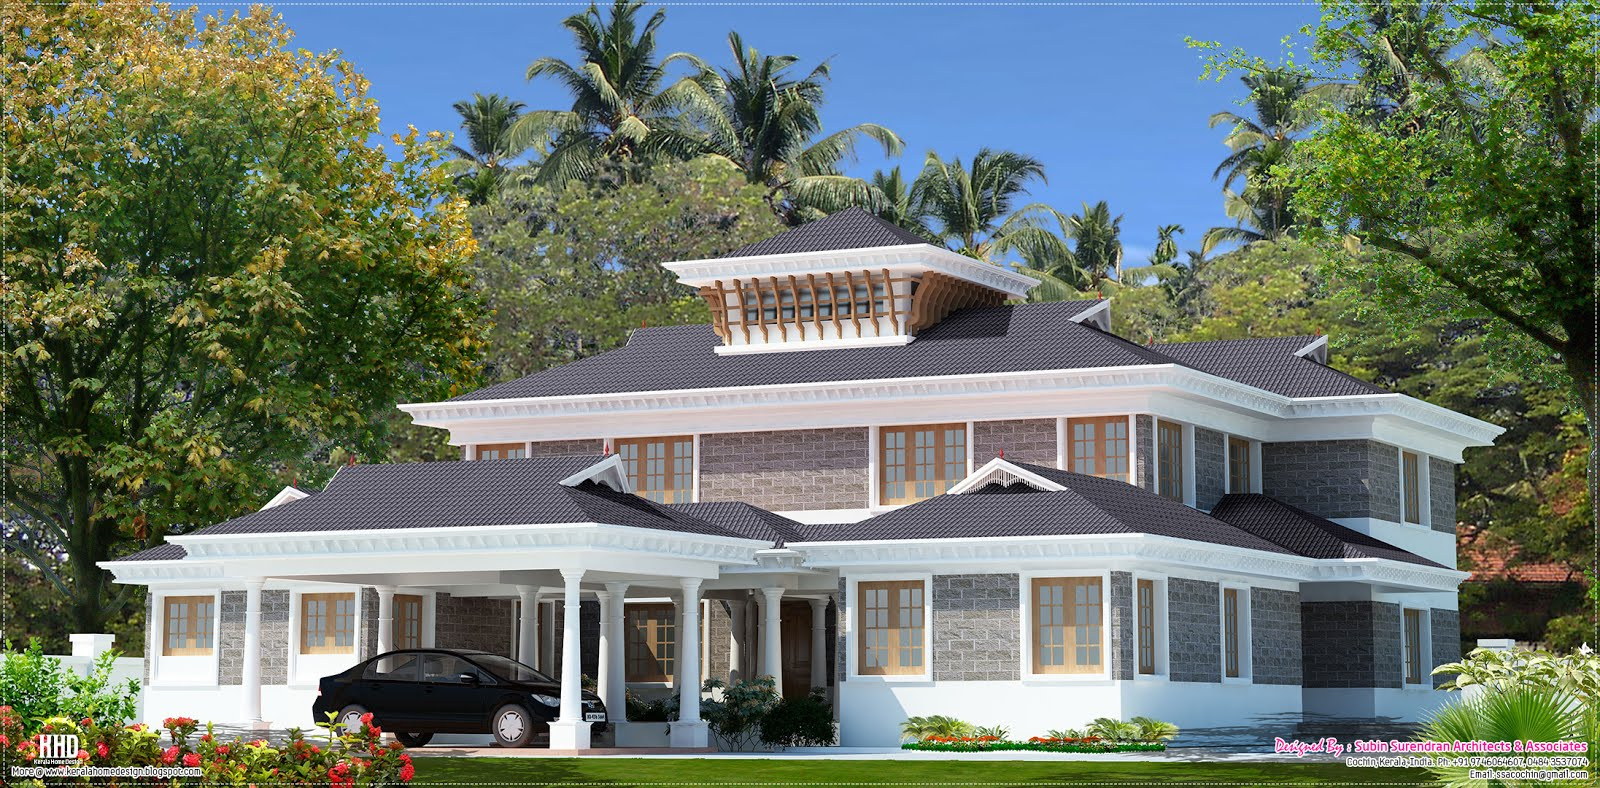 5000 luxury villa design kerala home design and for Beautiful villas images